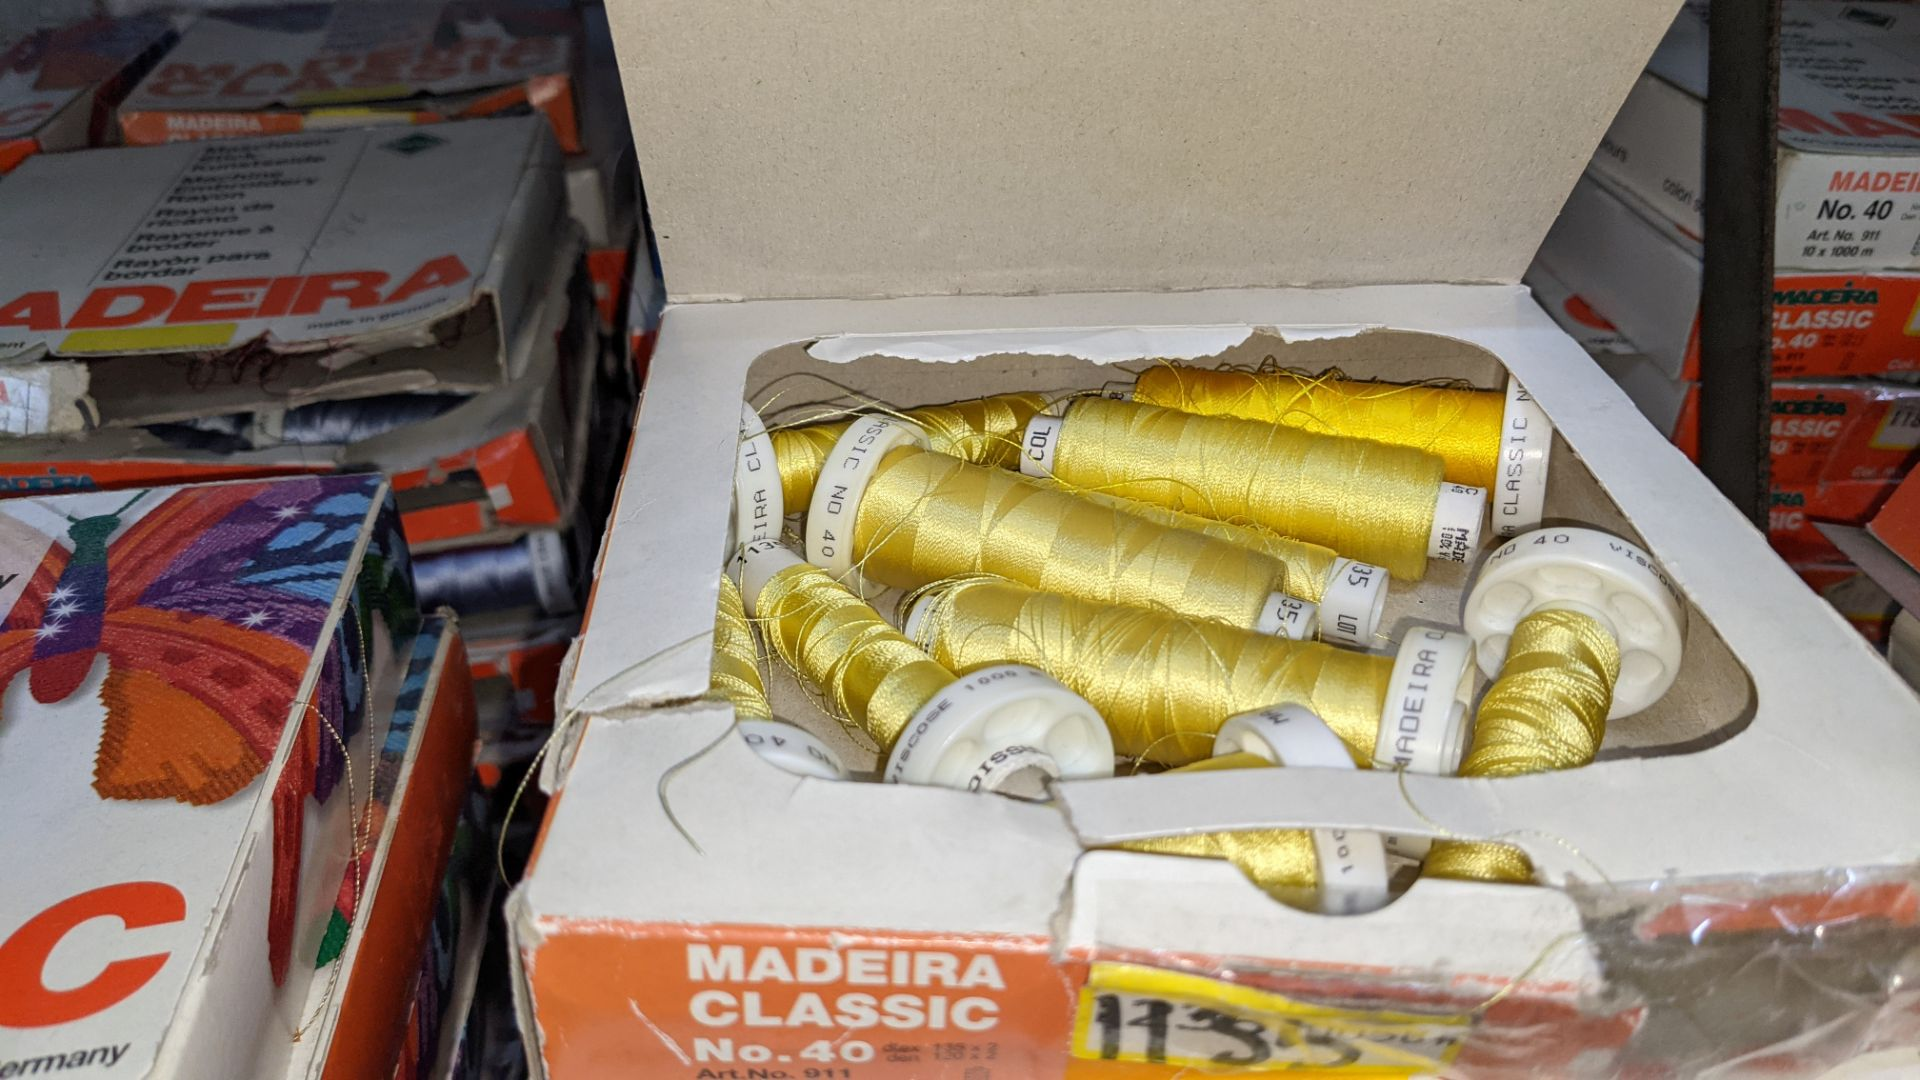 18 assorted boxes of Madeira Classic No. 40 embroidery rayon thread - Image 3 of 5